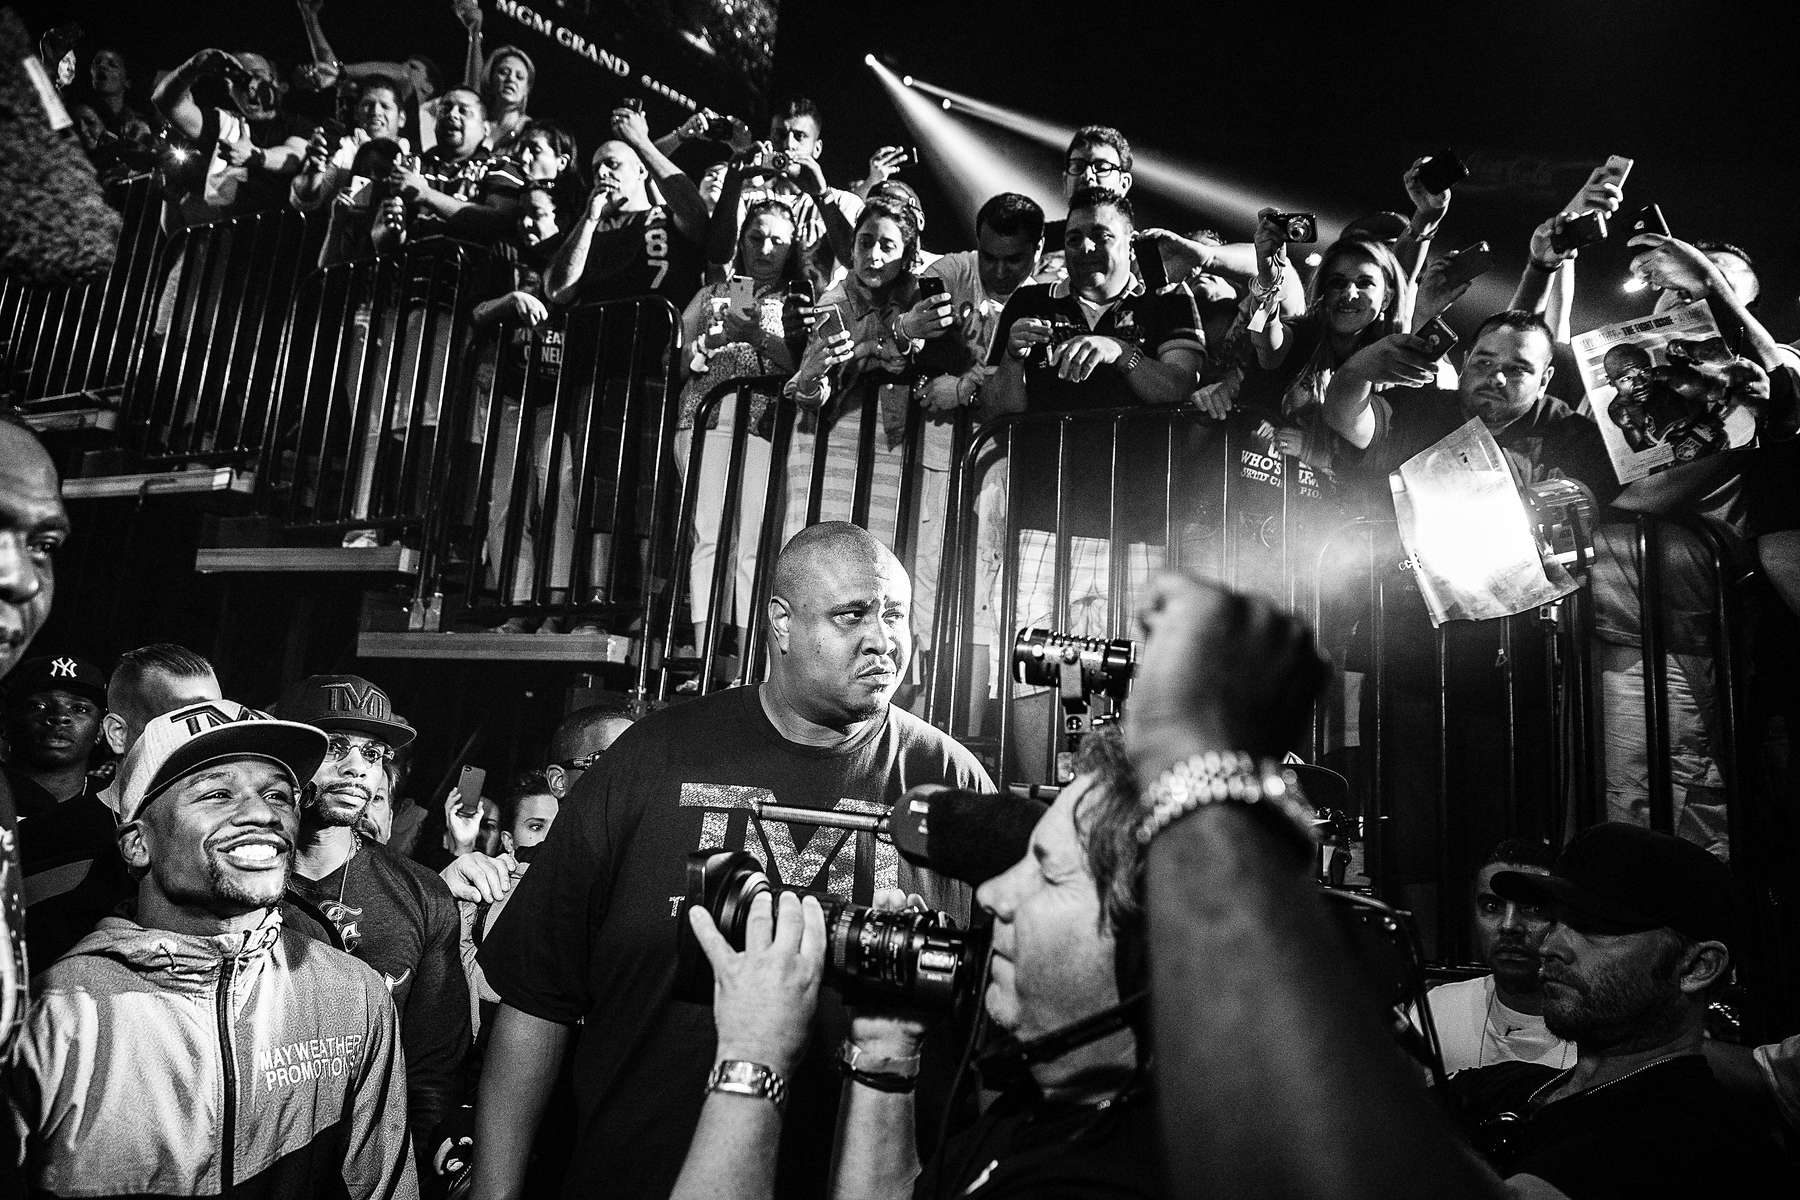 LAS VEGAS, NV - SEPTEMBER 13: Mayweather smiles as he's greeted by a raucous crowd before the weigh-in at the MGM Grand Garden Arena. (Photo by Benjamin Lowy/Reportage by Getty Images)